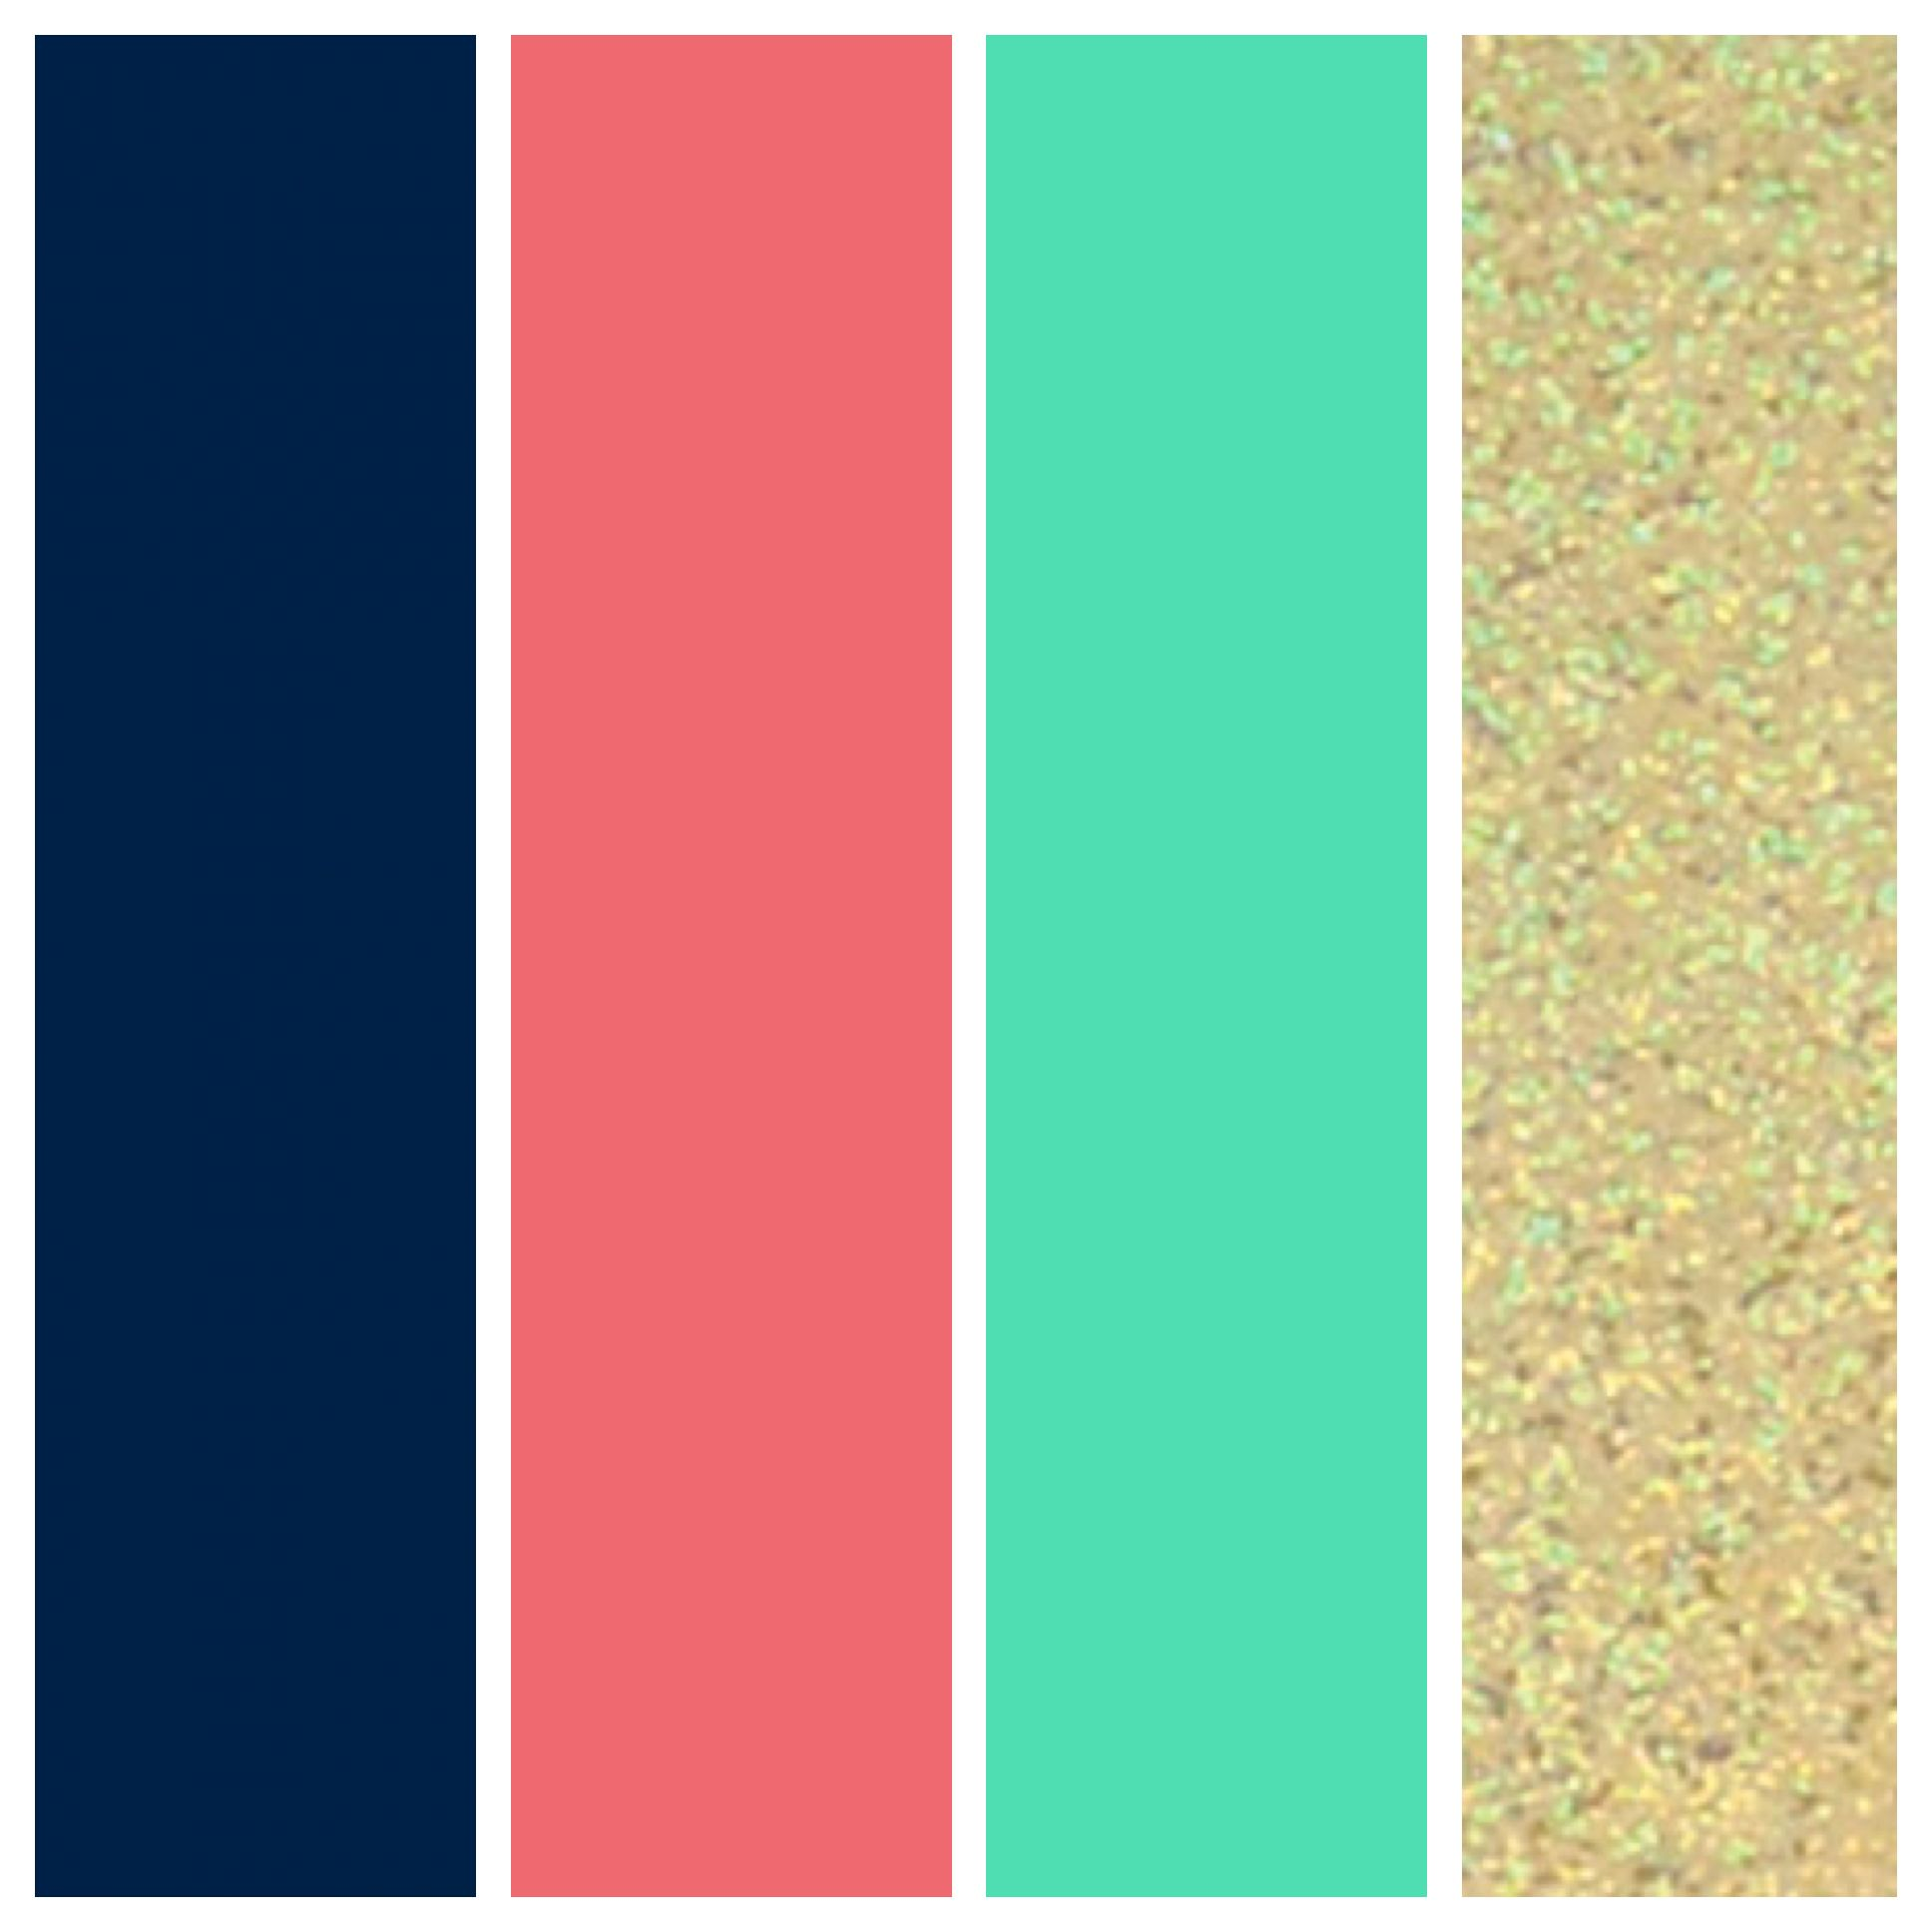 Bedroom color schemes gold - Baby Girl Color Scheme Navy Coral Seafoam And Gold Master Bedroom Colors